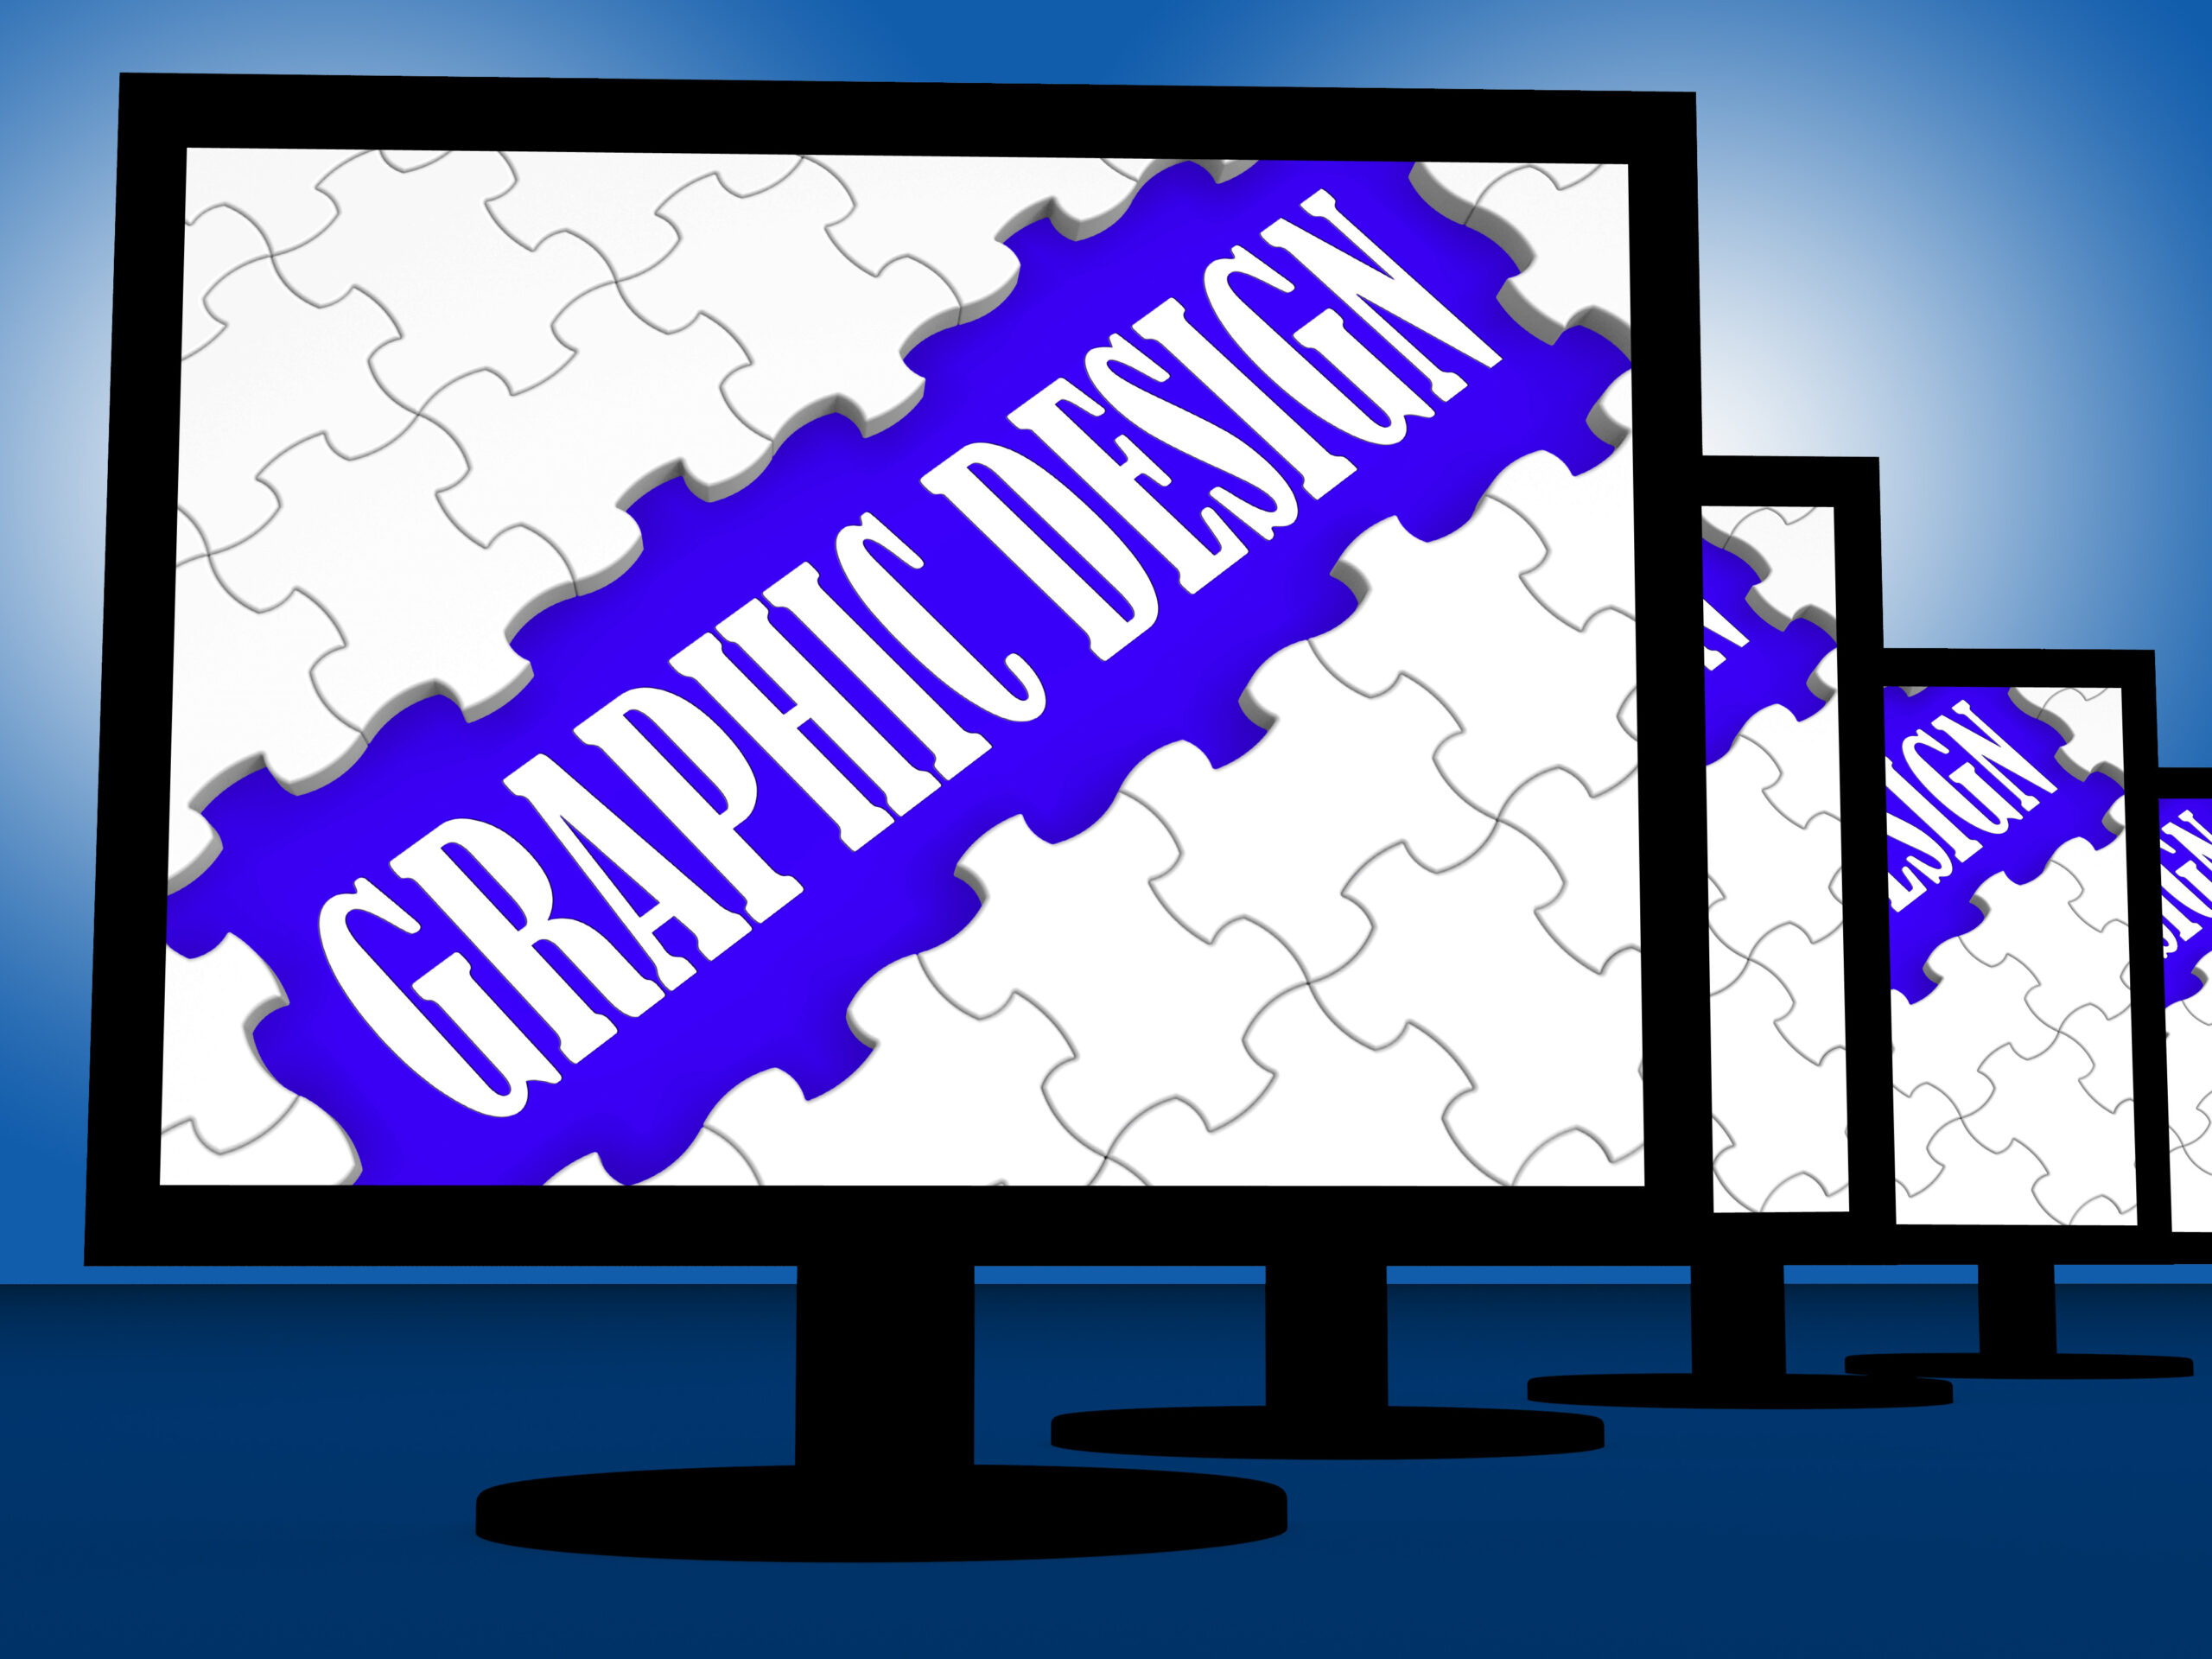 Web Design: Stages of creating graphic design